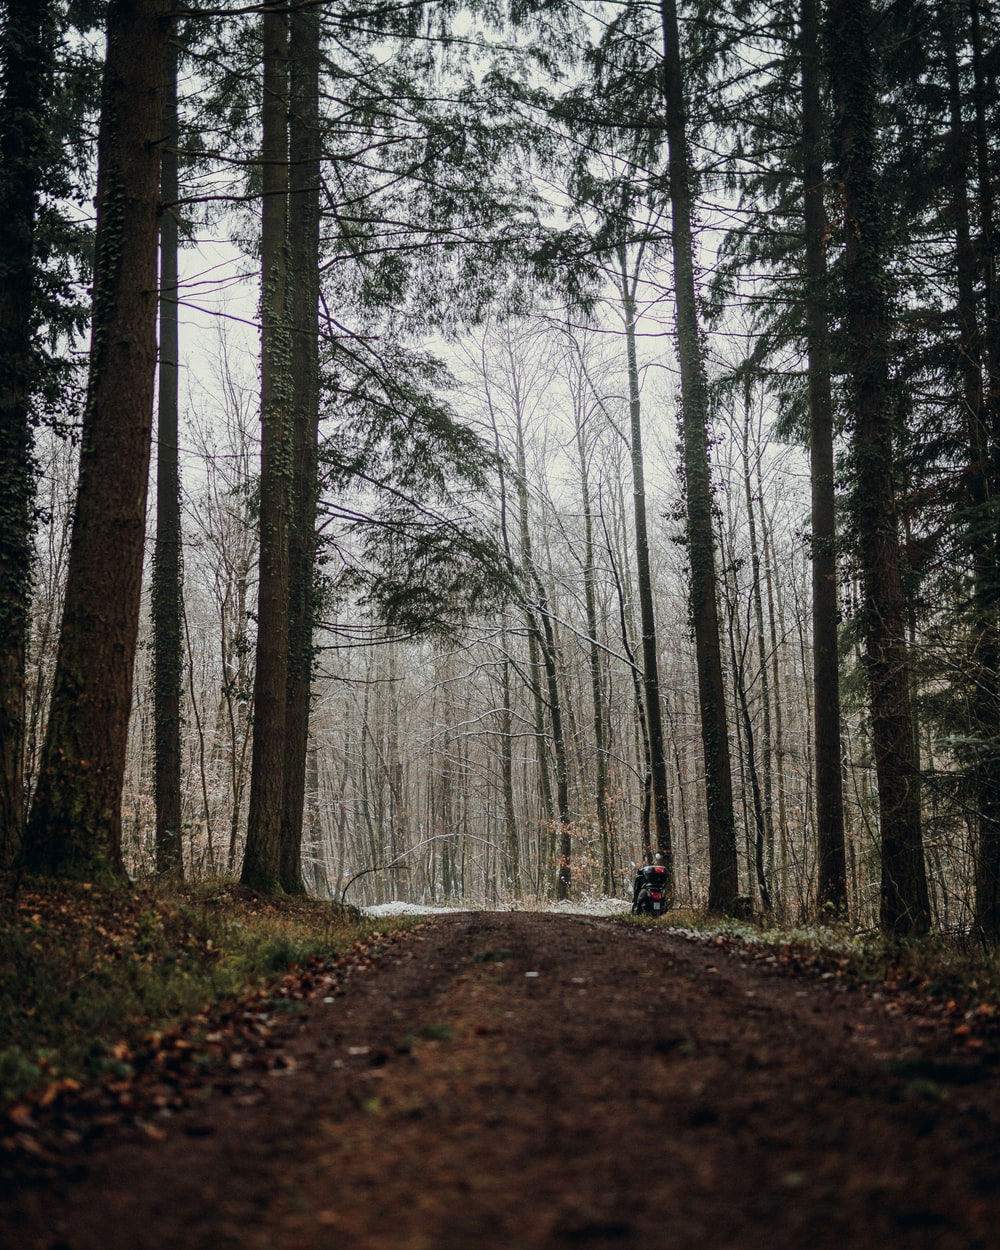 person in black jacket walking on pathway between bare trees during daytime